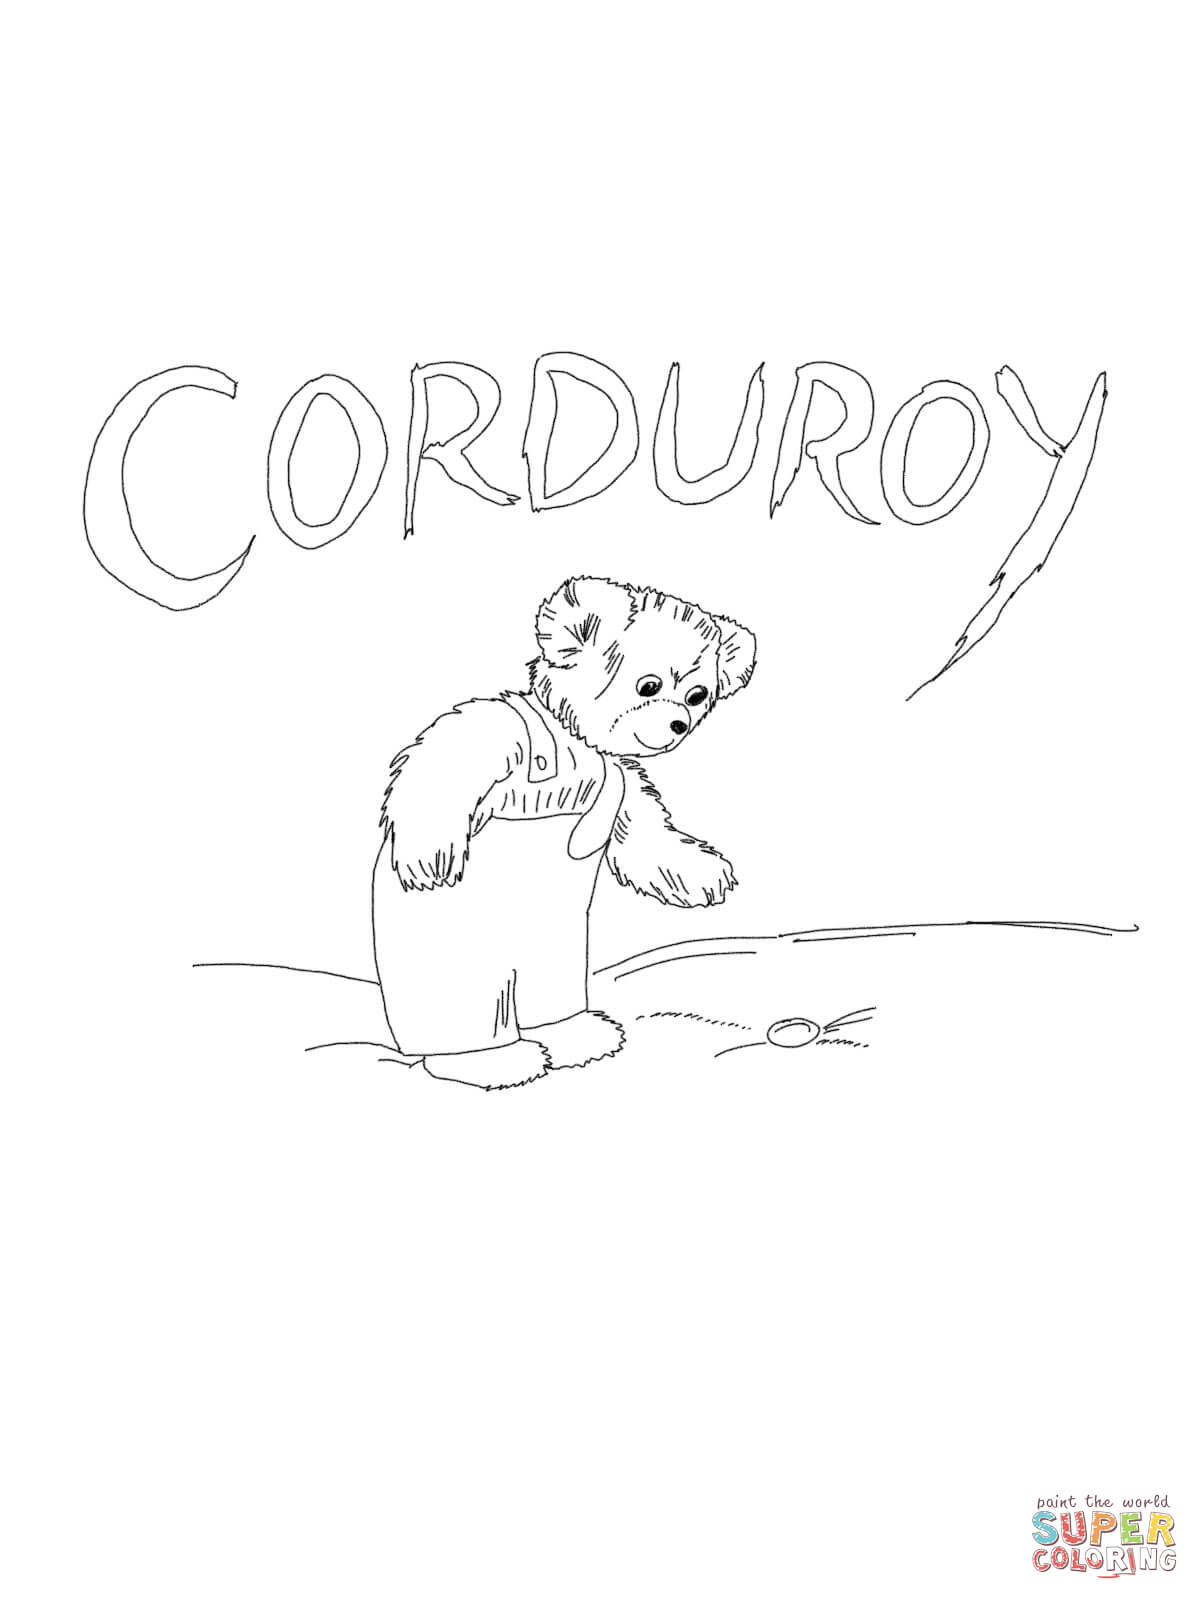 Corduroy Is Looking For Button Coloring Page